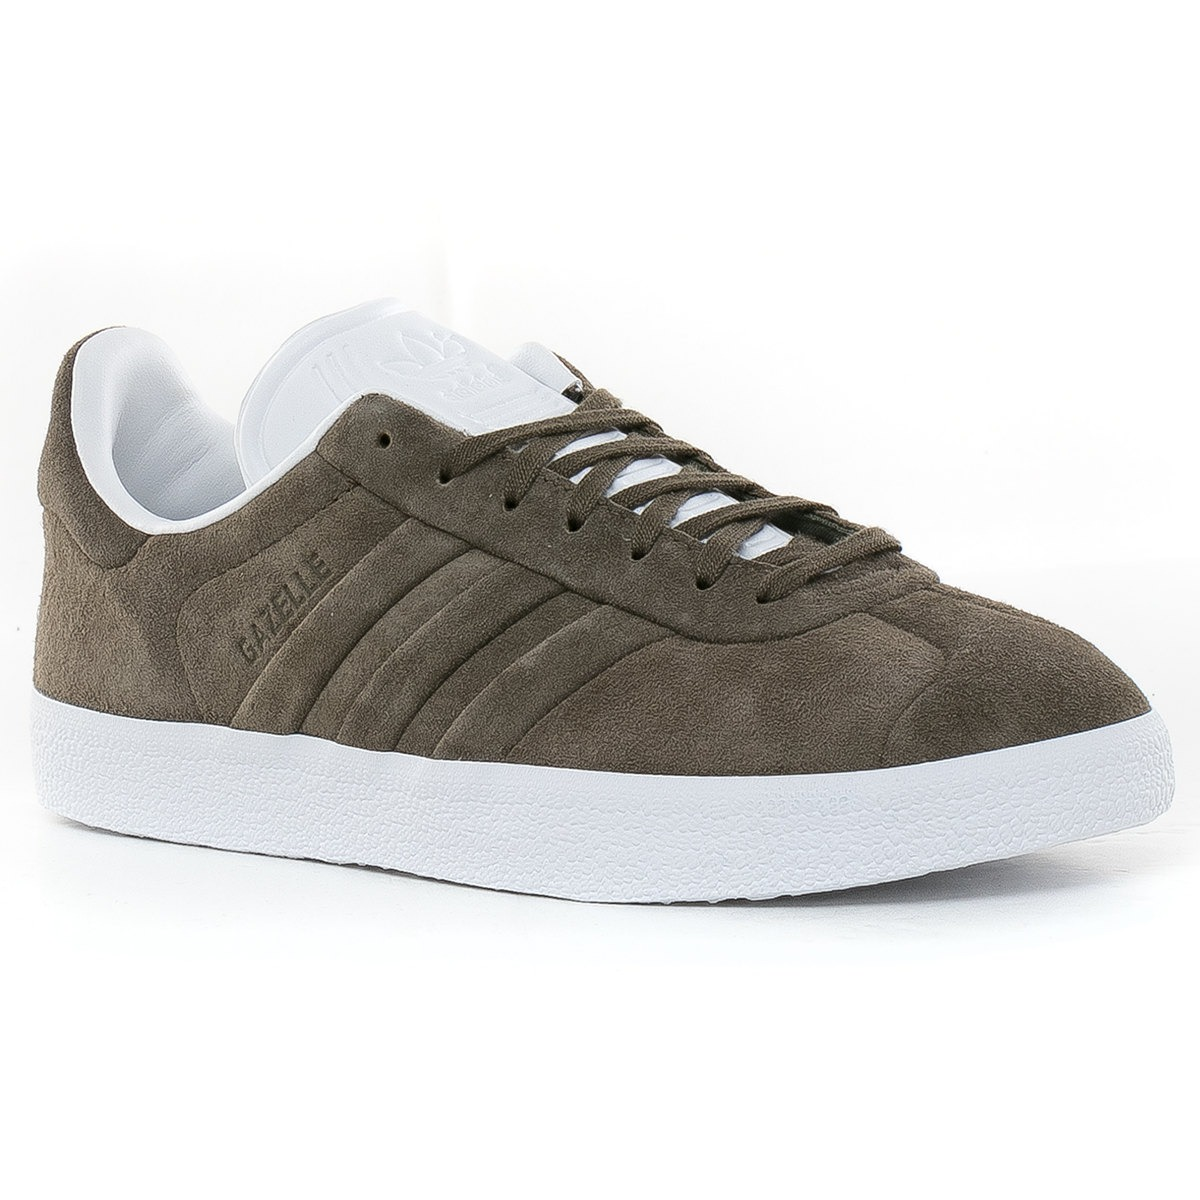 Zapatillas Gazelle Stitch And Turn adidas Originals